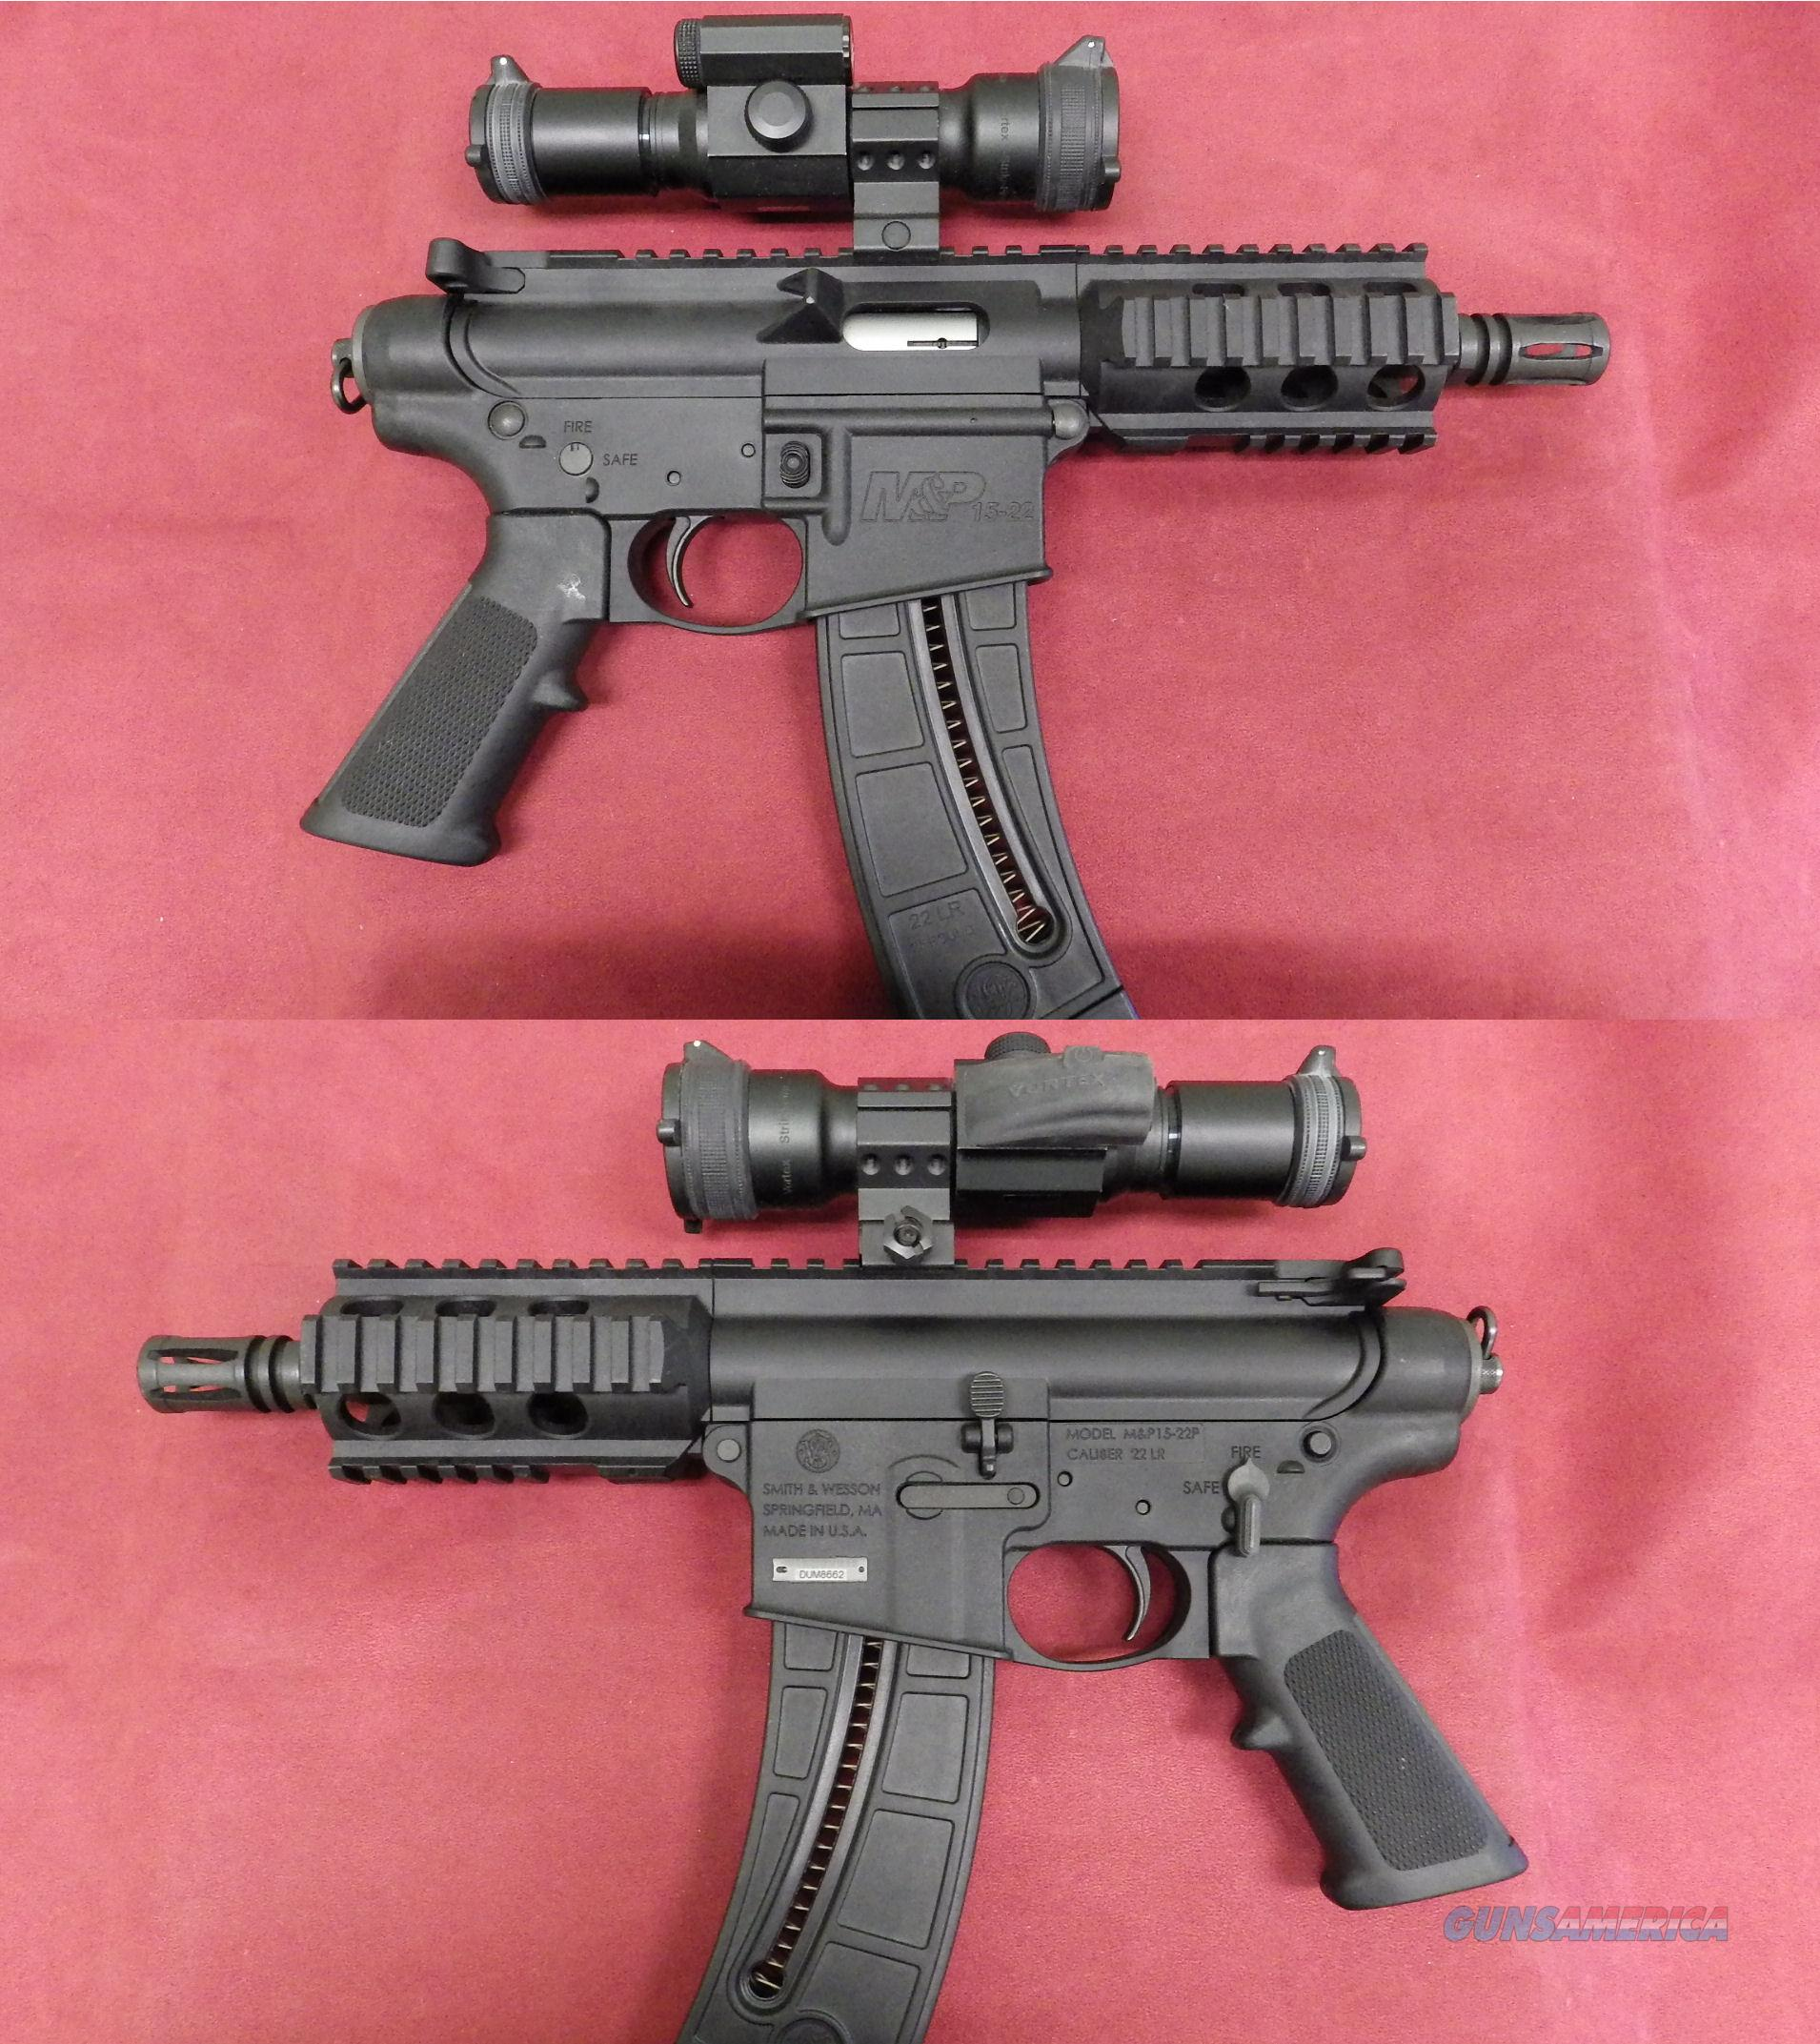 Smith & Wesson M&P 15-22P  *MUST CALL*  Guns > Pistols > Smith & Wesson Pistols - Autos > Polymer Frame